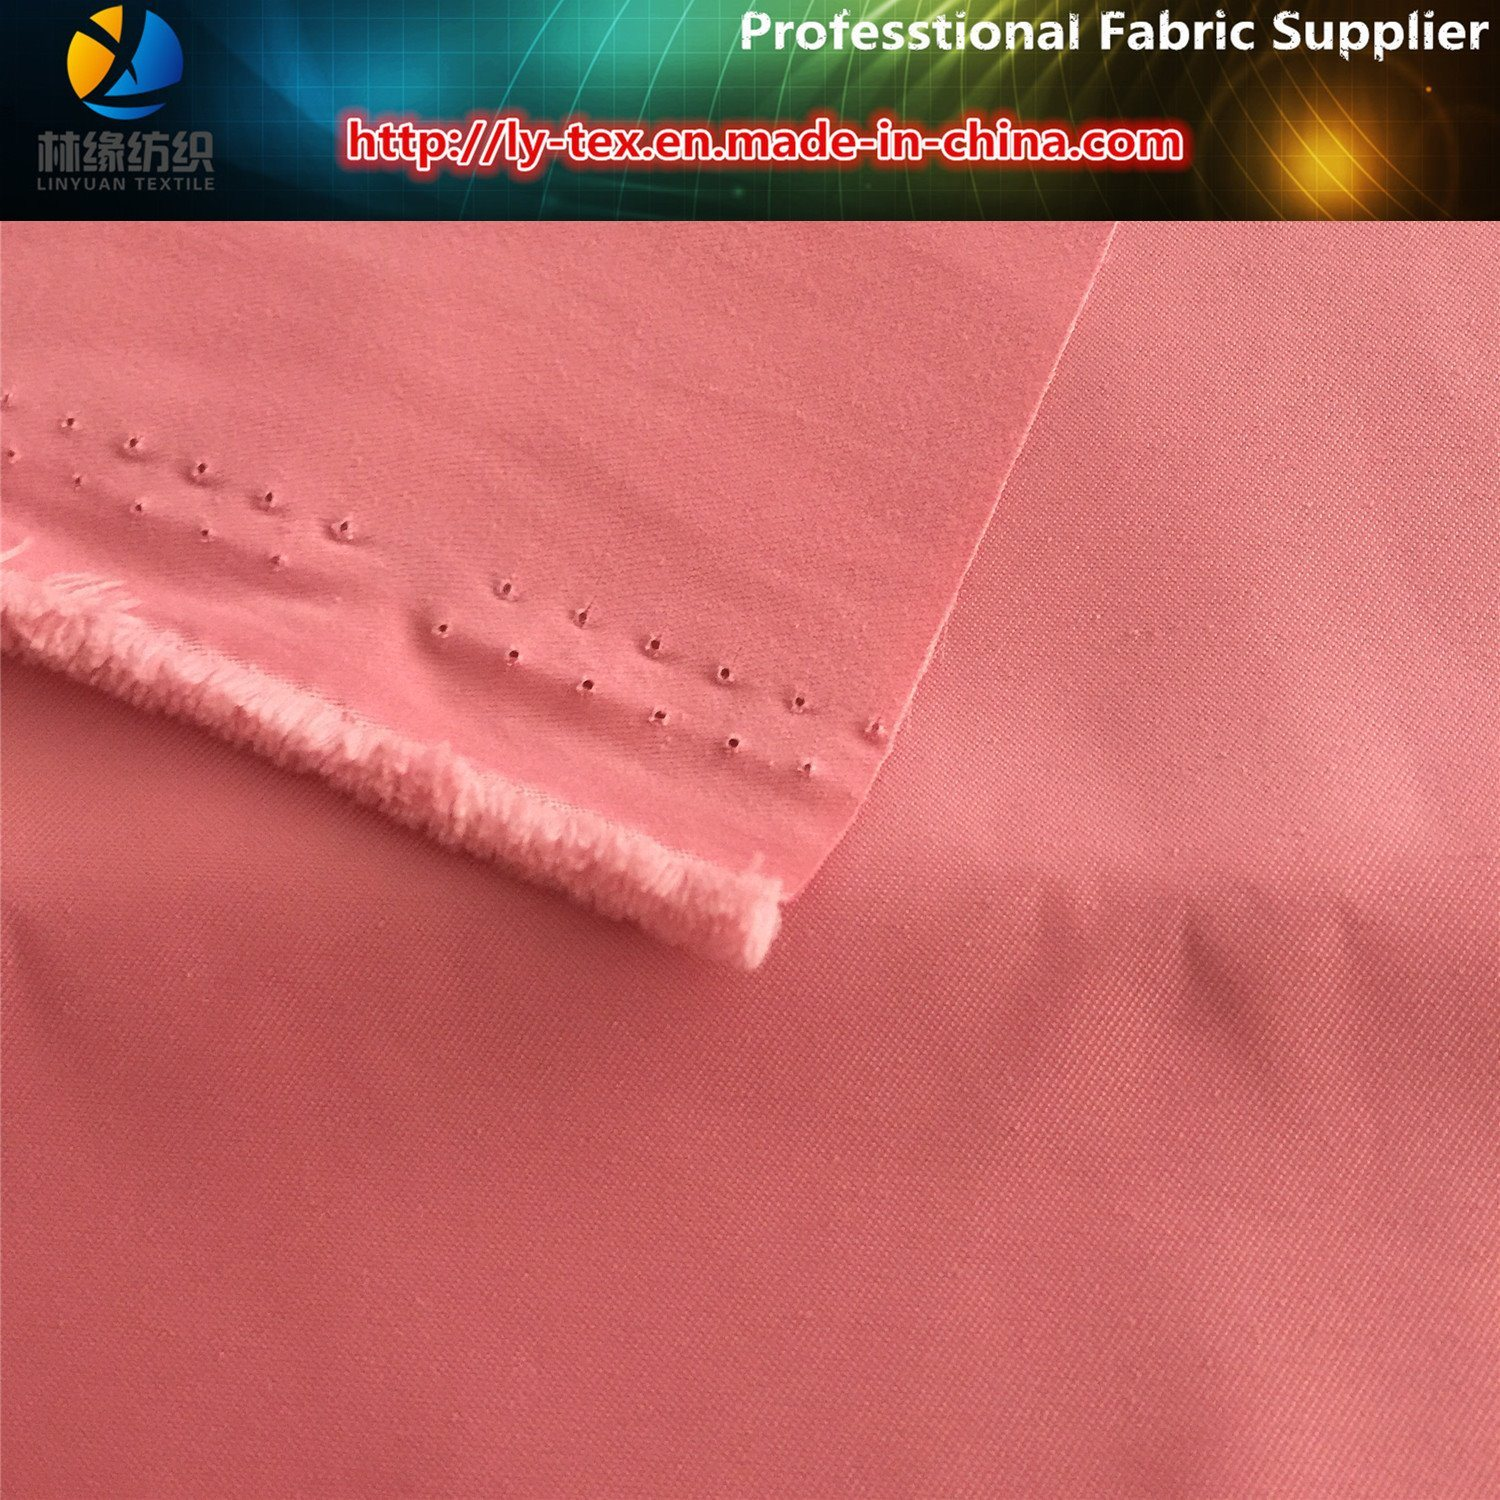 Polyester/Nylon Blended Twill Micro Fiber Fabric, Shirt Fabric